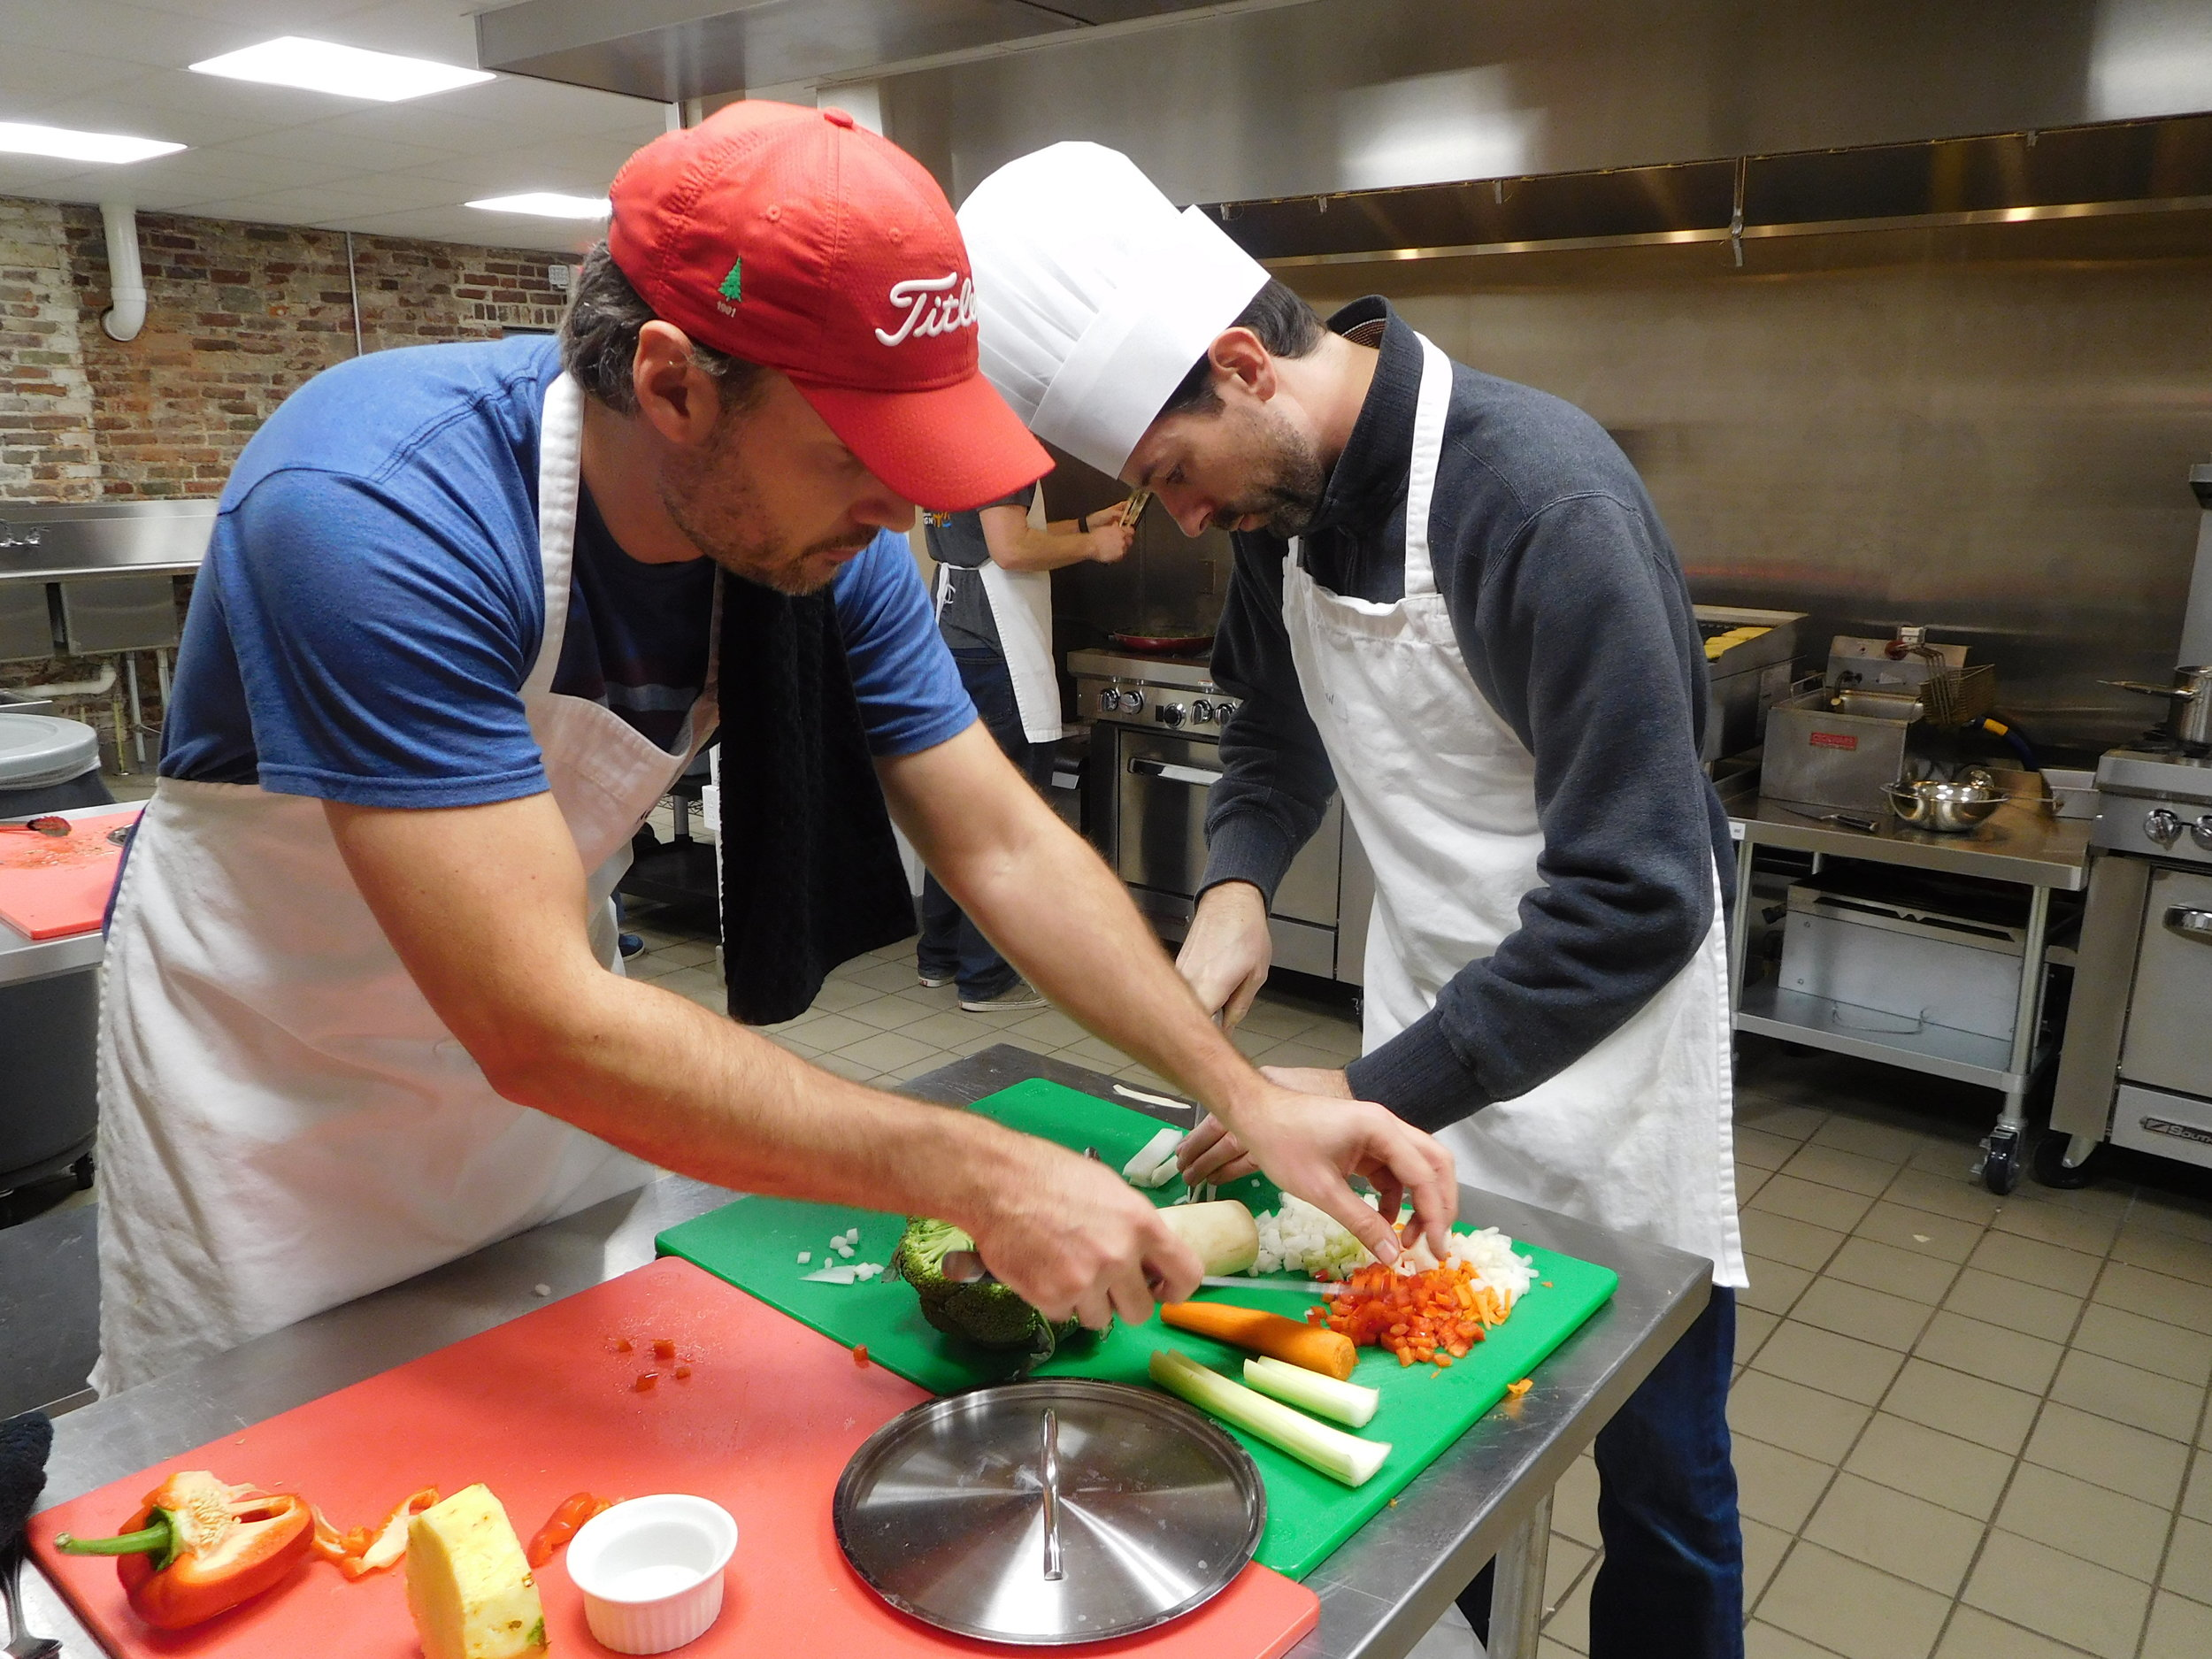 Men chopping vegetables at amateur cooking competition party